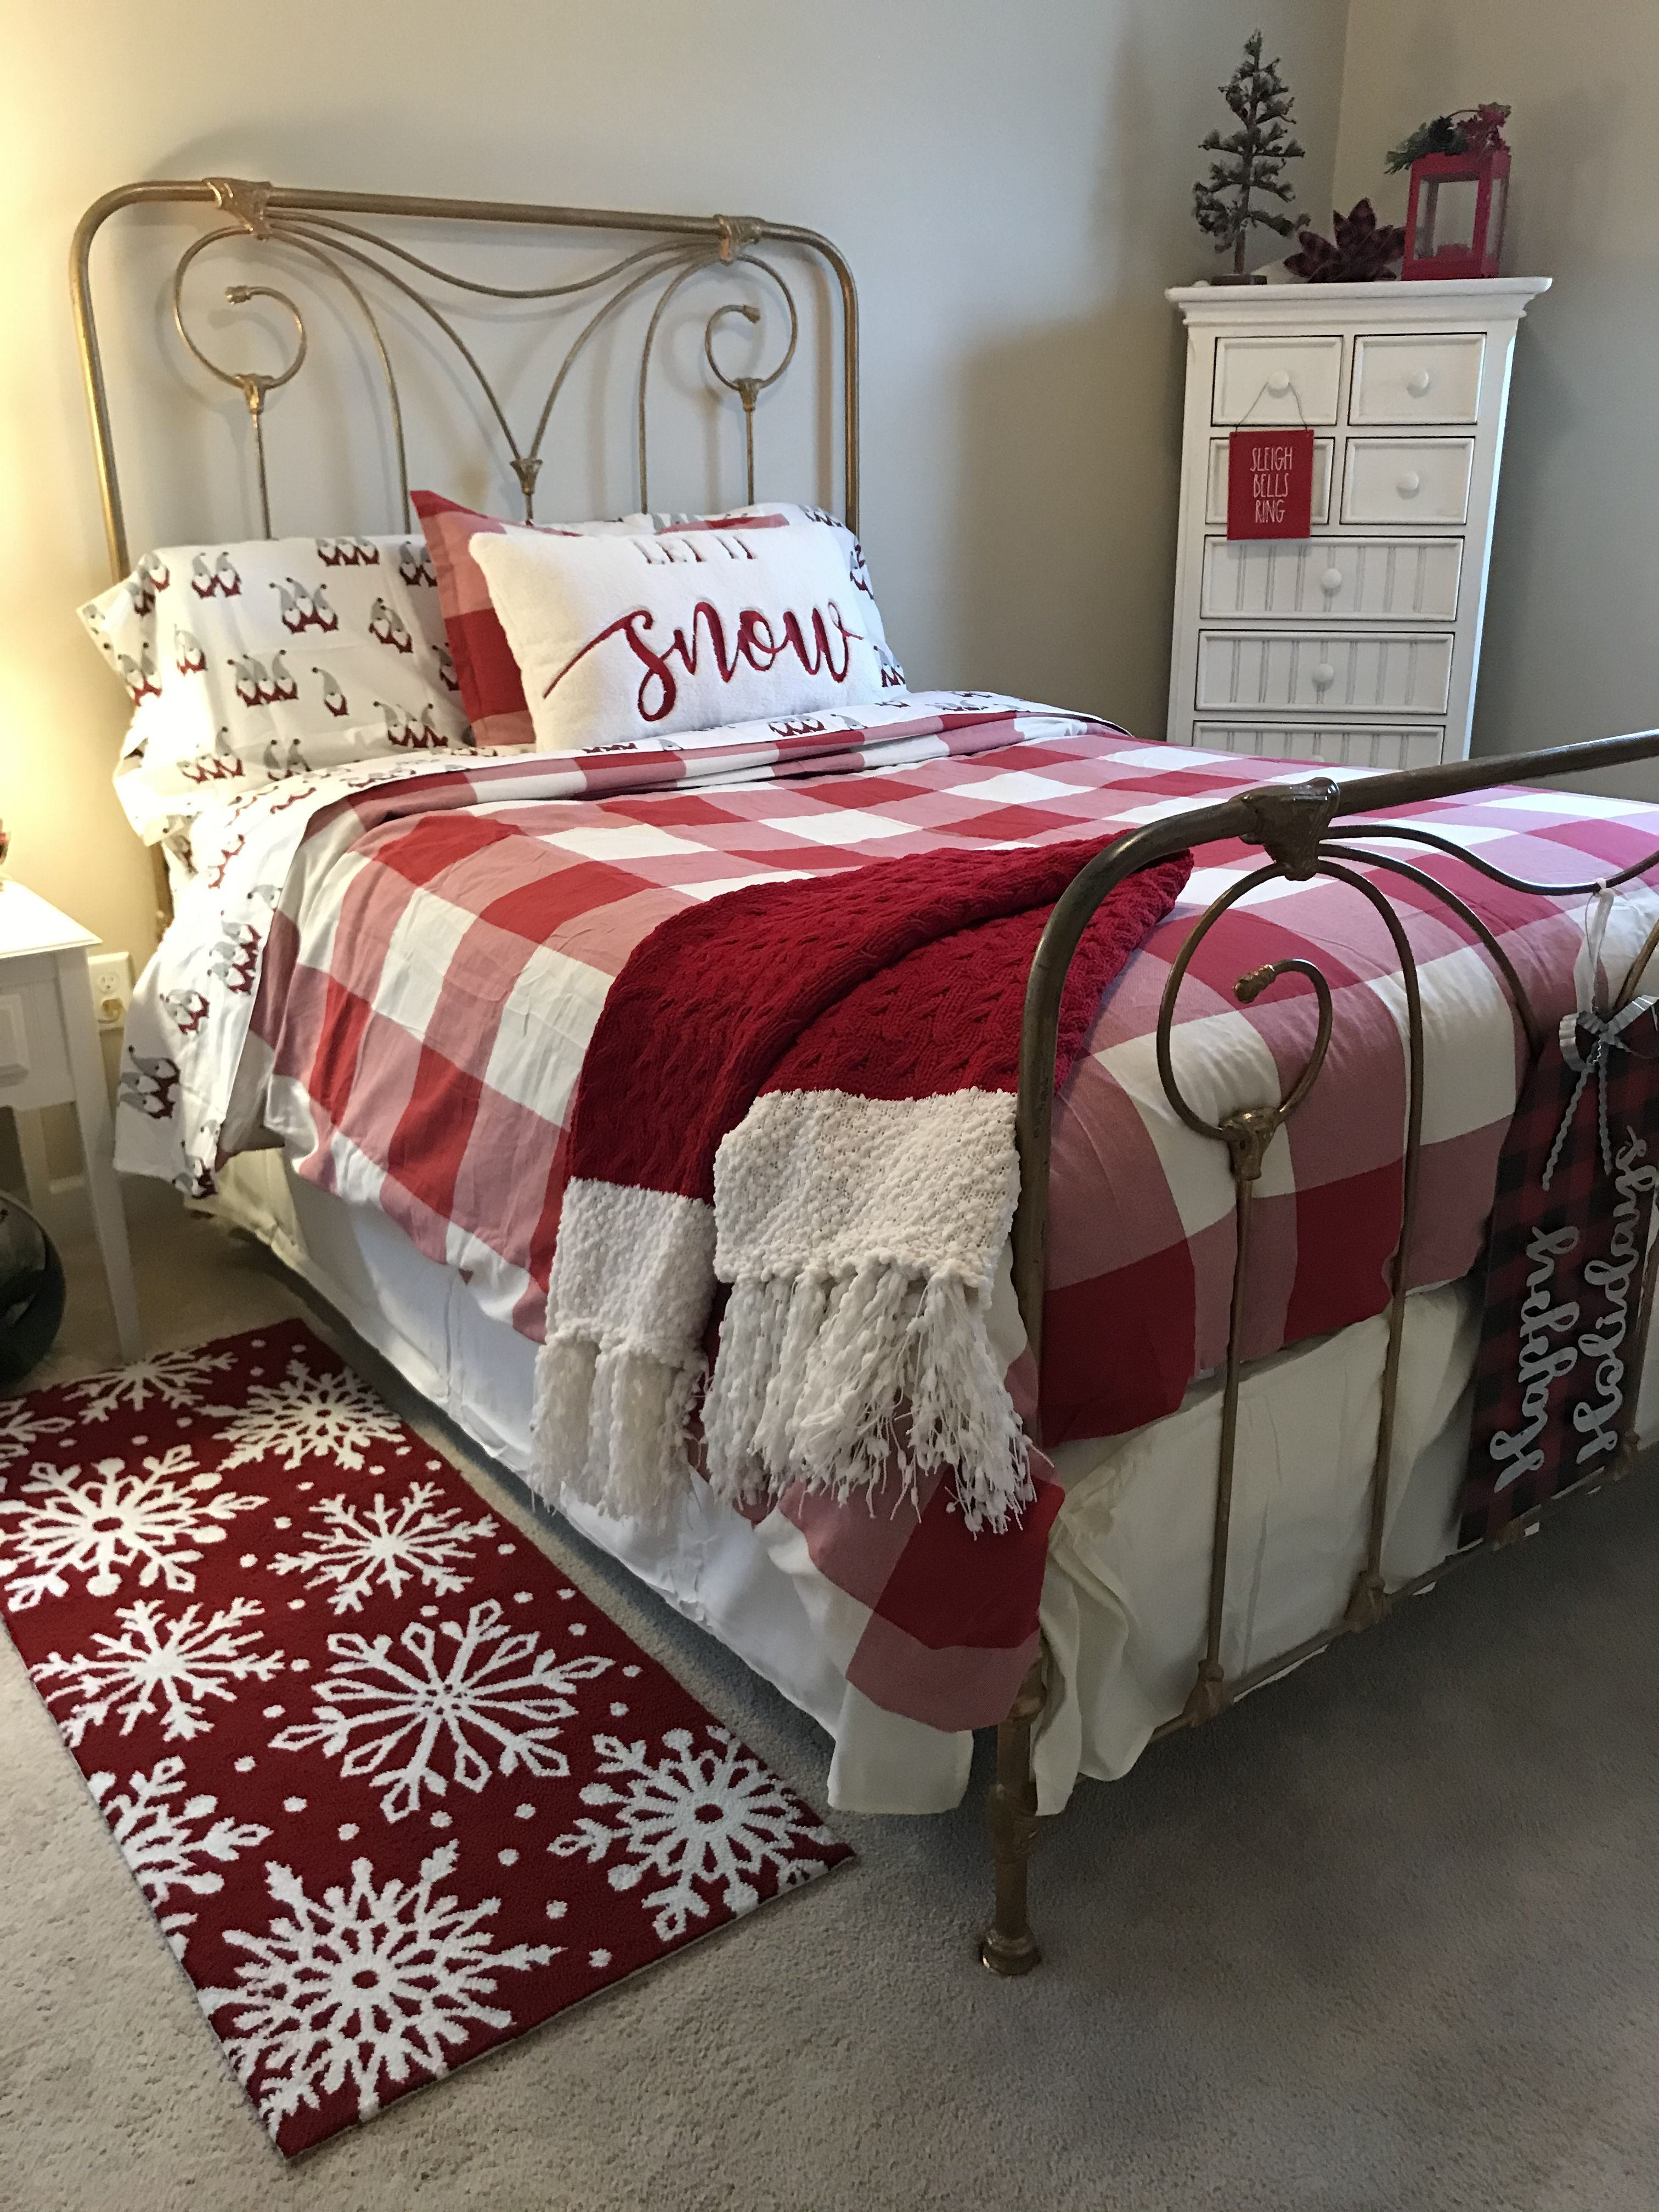 Added Pottery Barn duvet and gnome bedding for Christmas